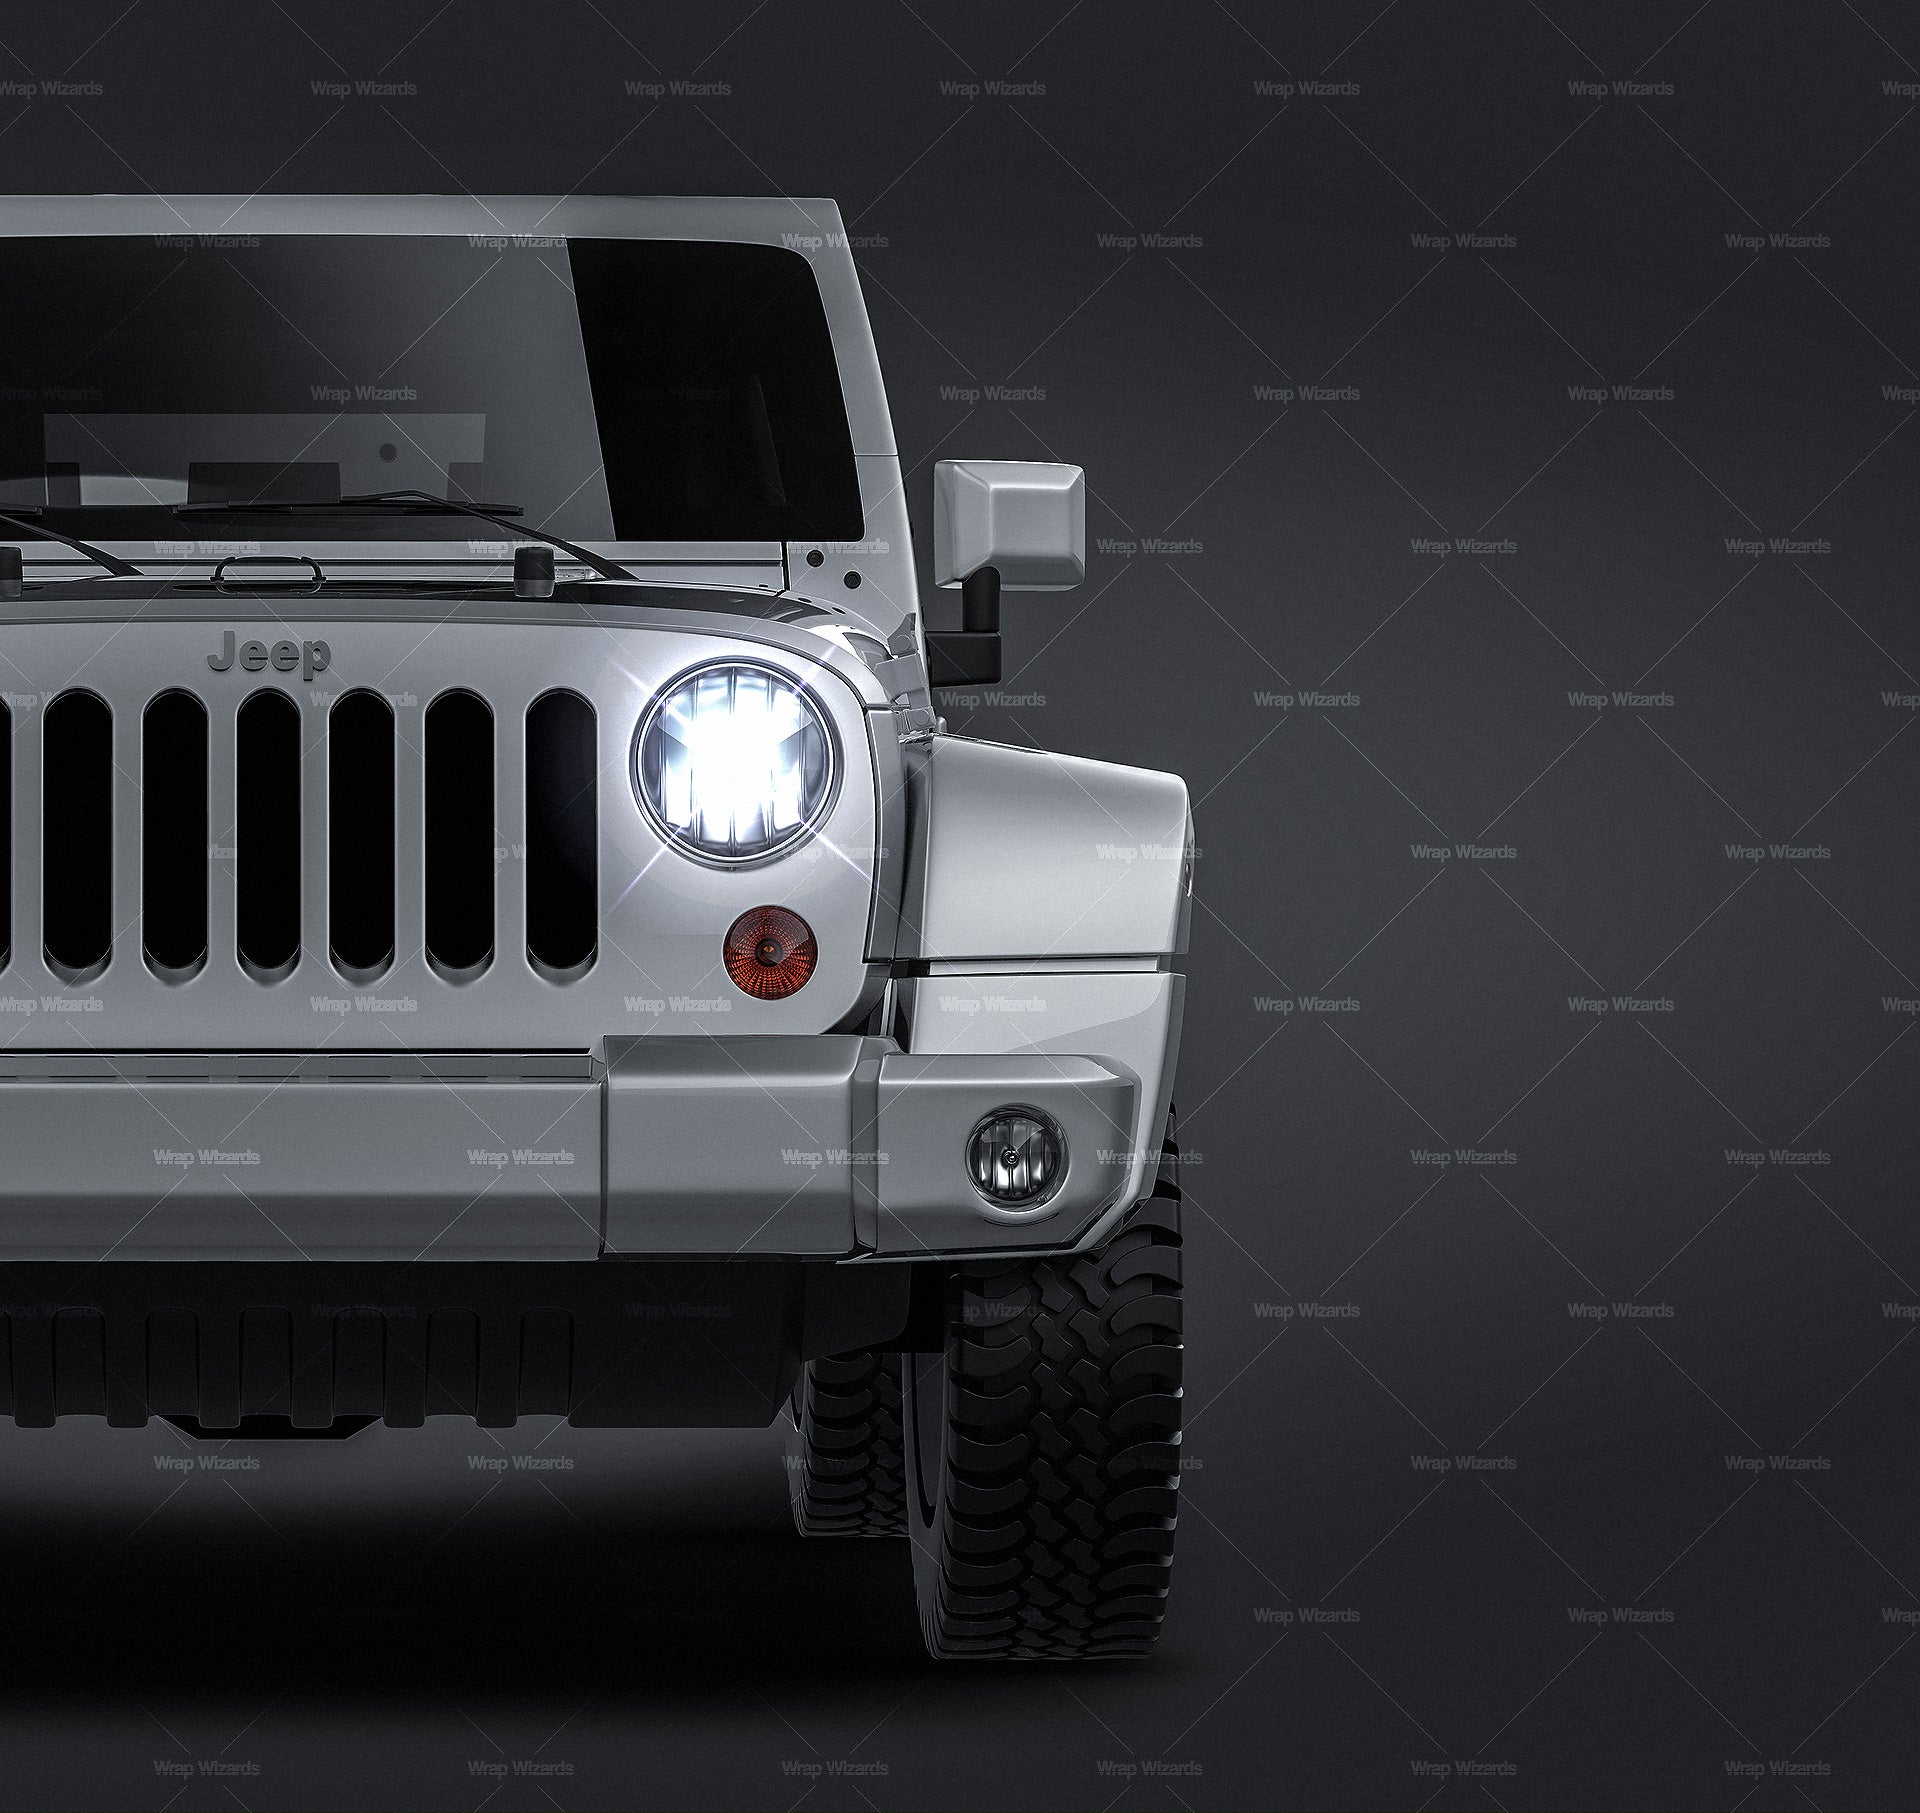 Jeep Wrangler 2012 all sides Car Mockup Template.psd